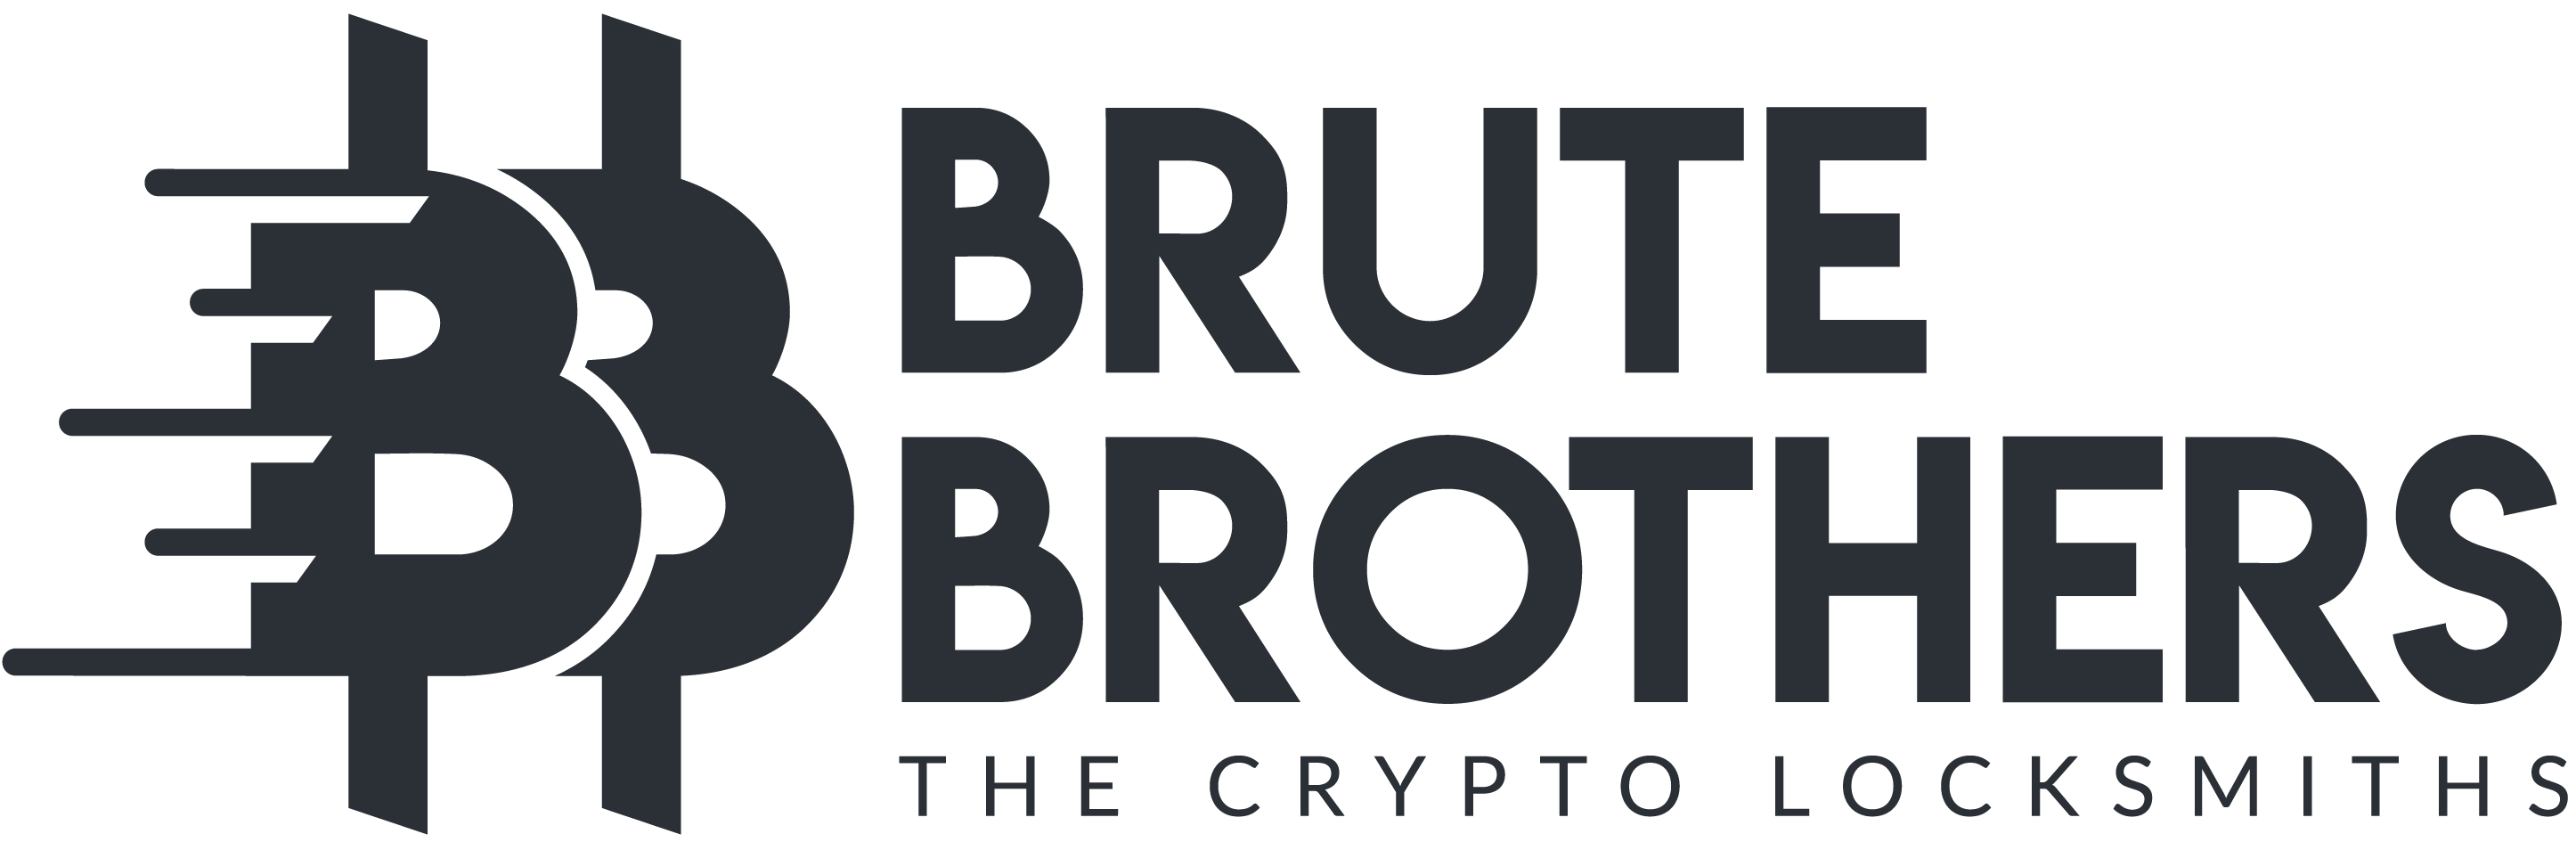 Brute Brothers Blog | Bitcoin Recovery